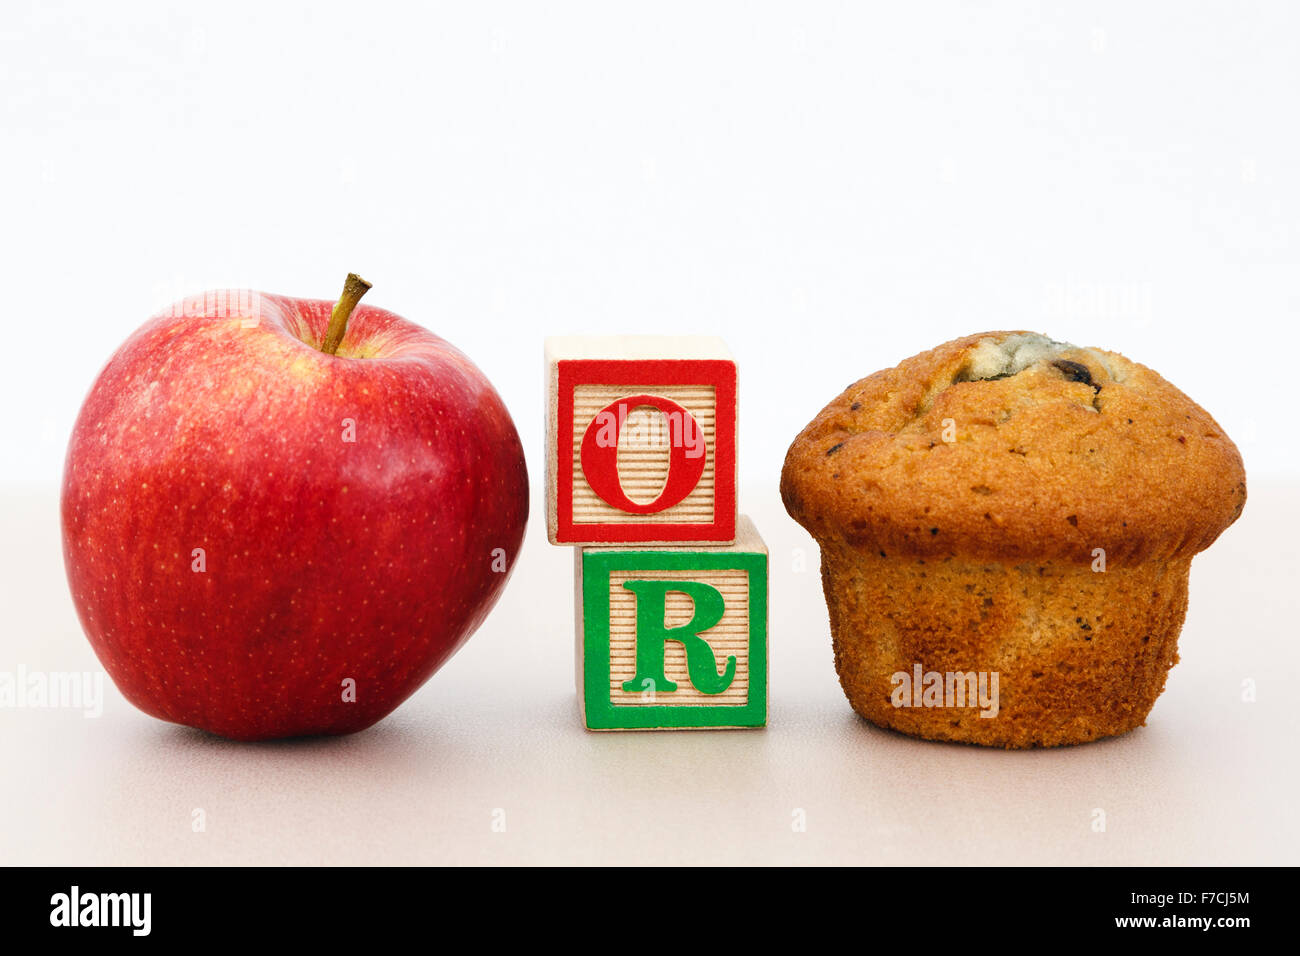 Rosy red apple and a muffin cake with word OR in letter blocks on a tabletop to illustrate choice of healthy or - Stock Image